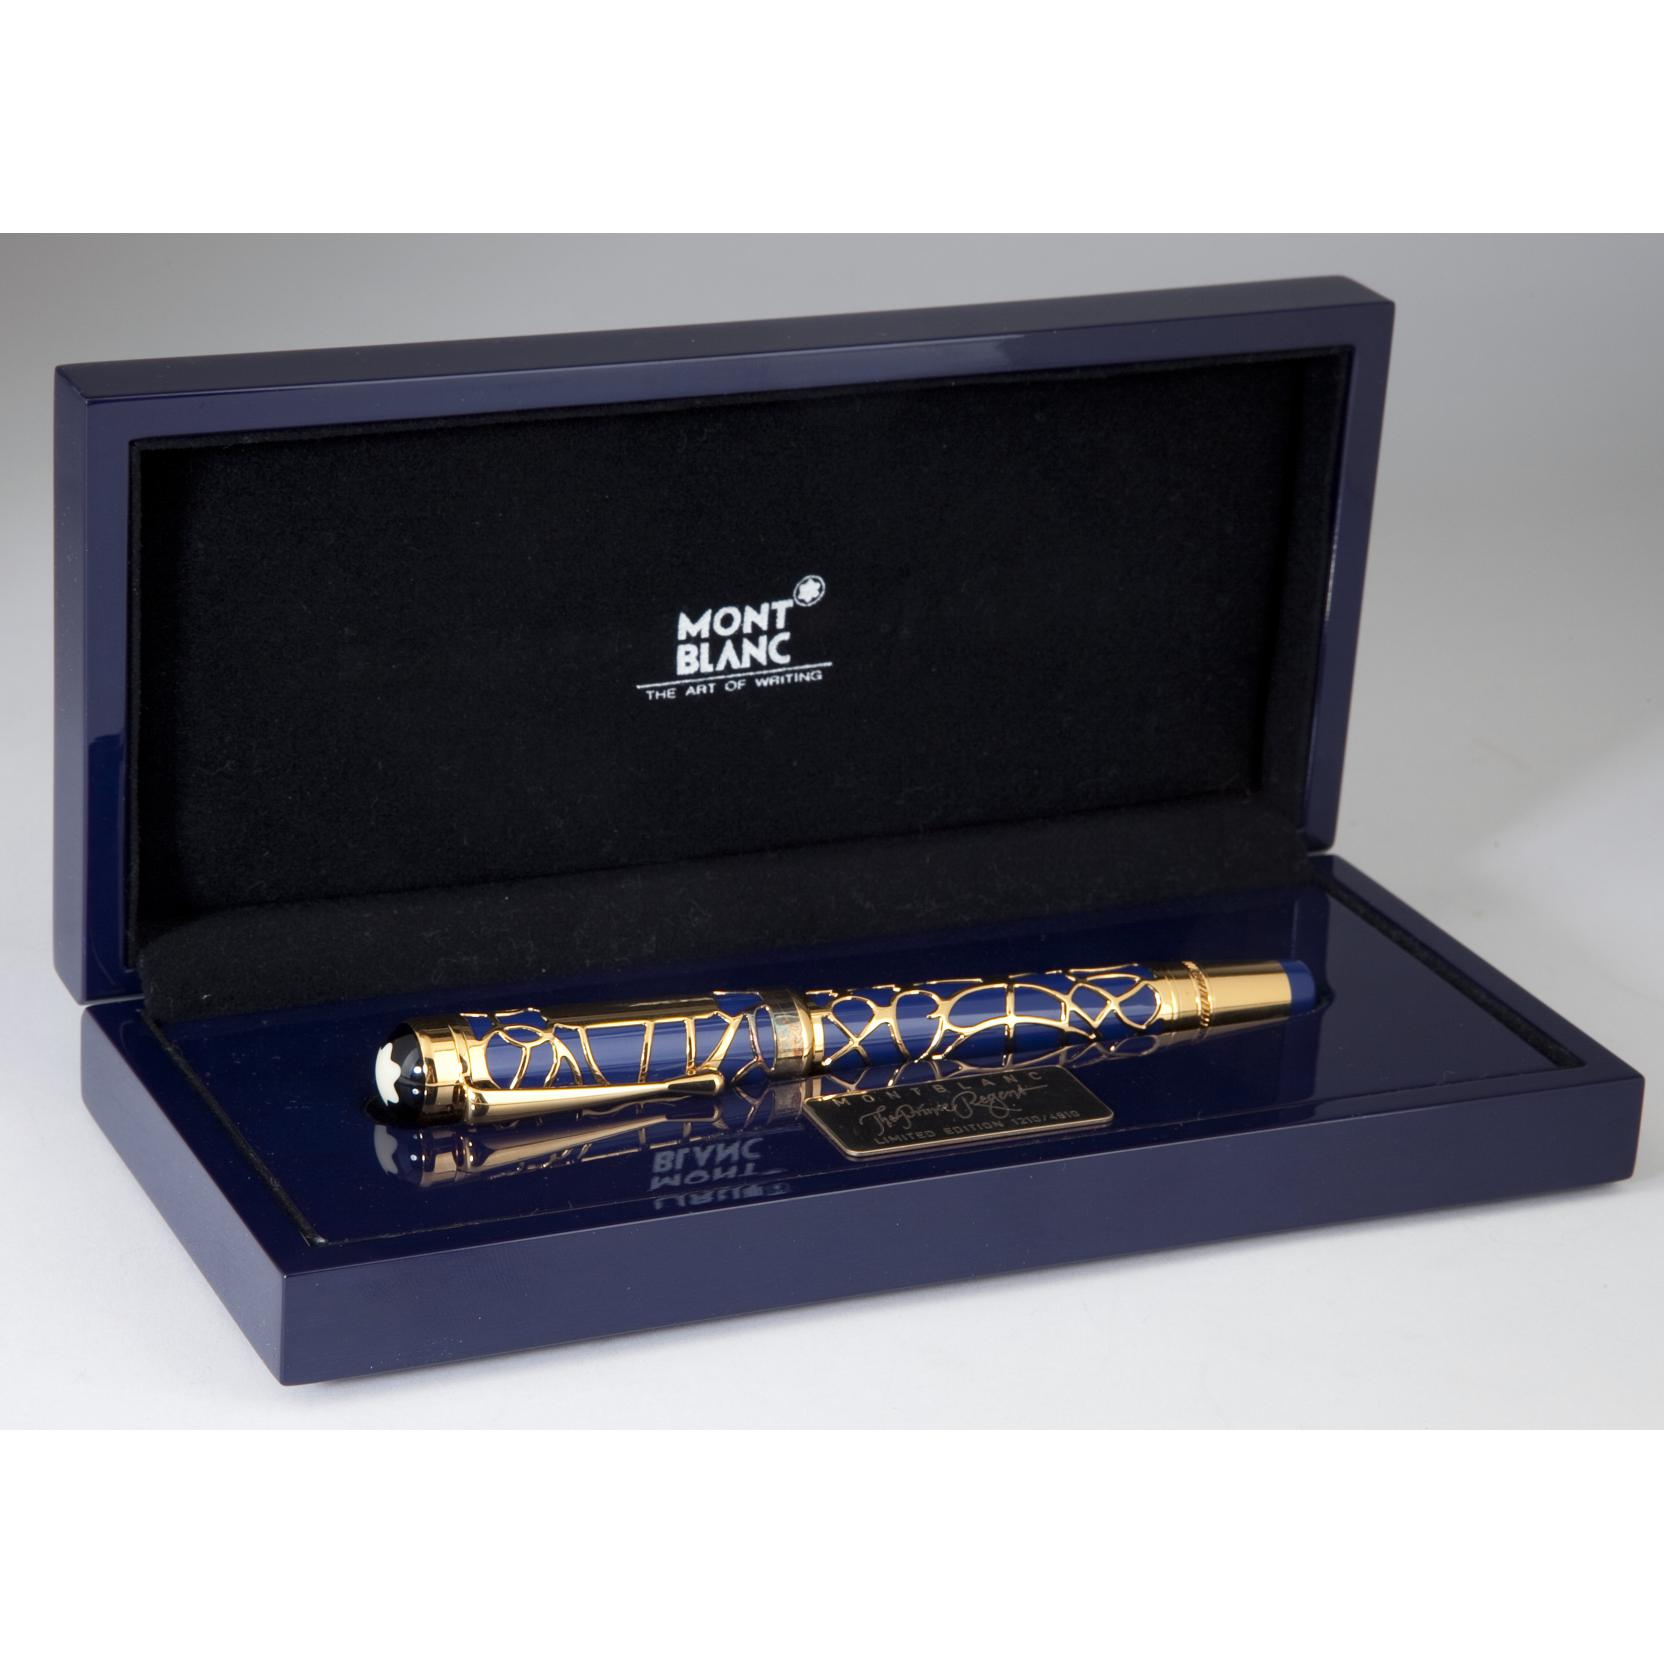 mont-blanc-prince-regent-limited-edition